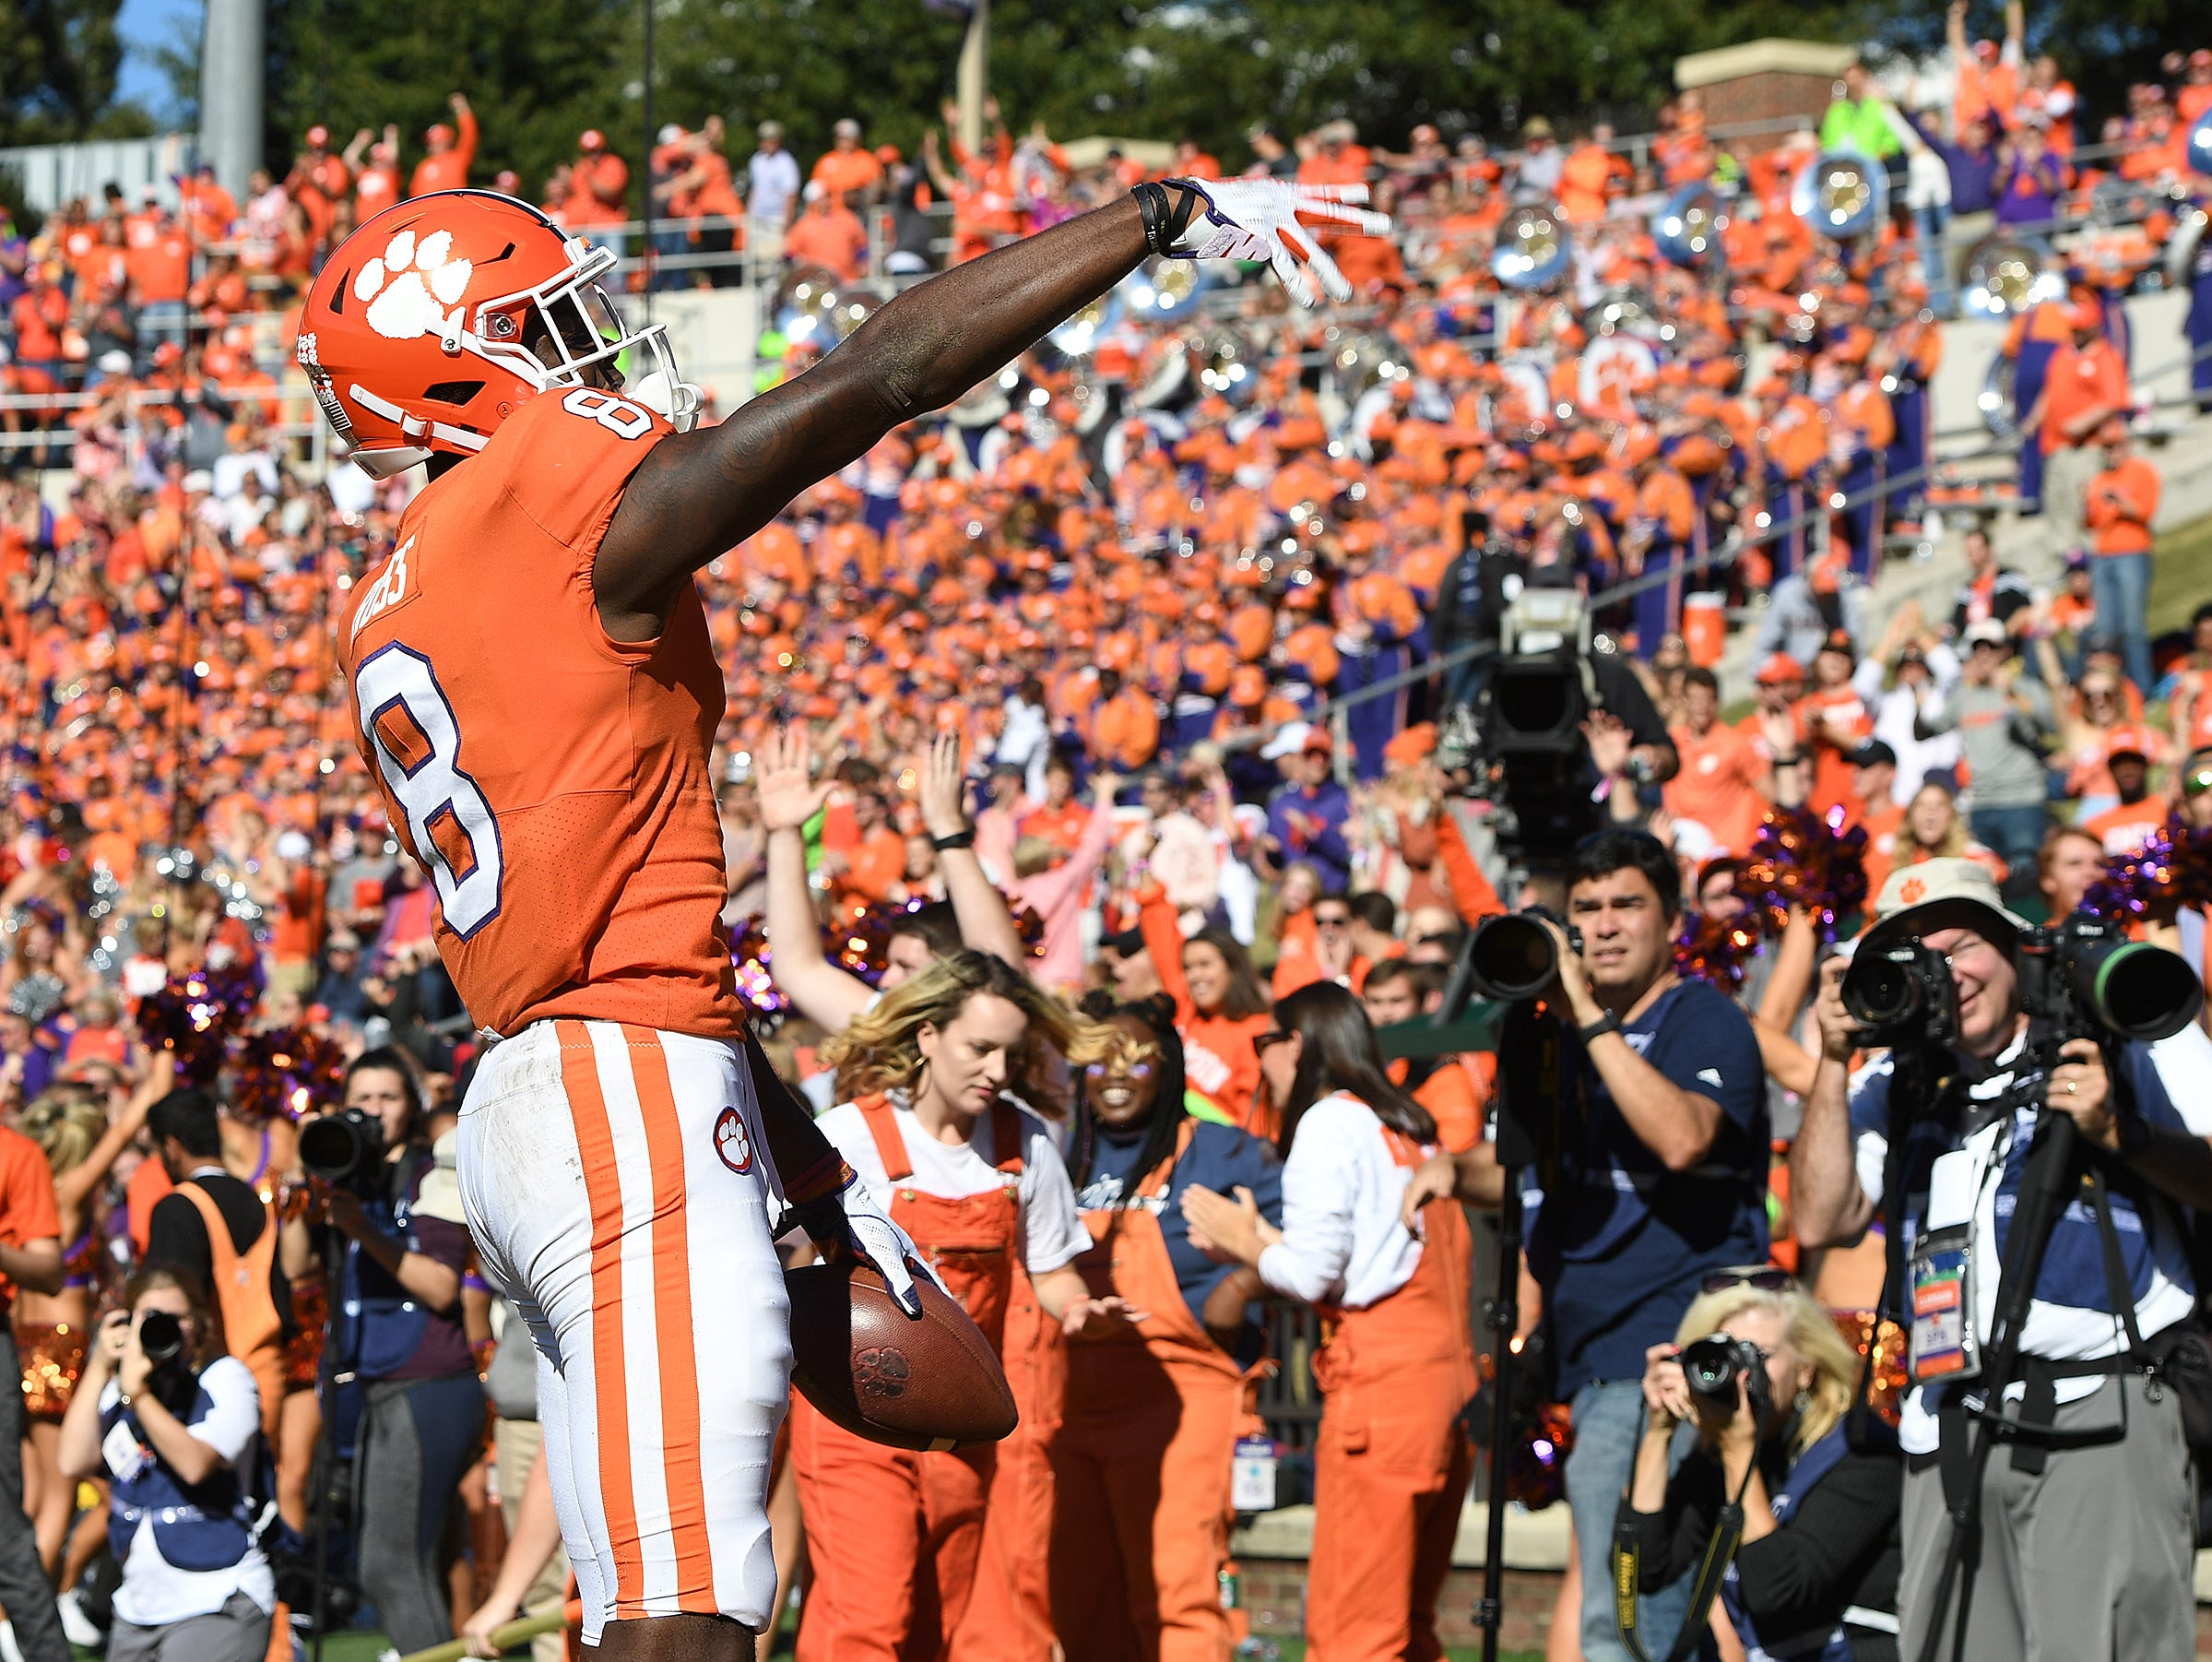 Clemson wide receiver Justyn Ross (8) reacts after scoring against Louisville during the 3rd quarter Saturday, November 3, 2018 at Clemson's Memorial Stadium.